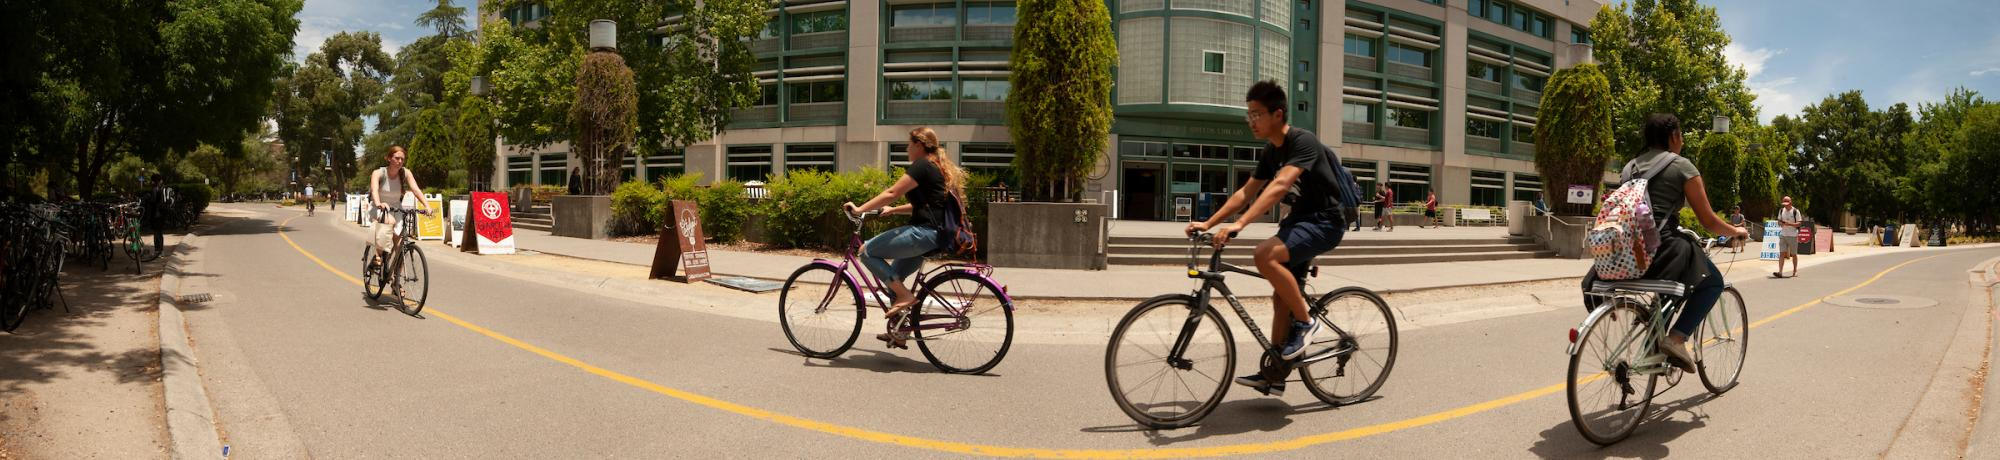 Image of bicyclists in front of Shields Library.